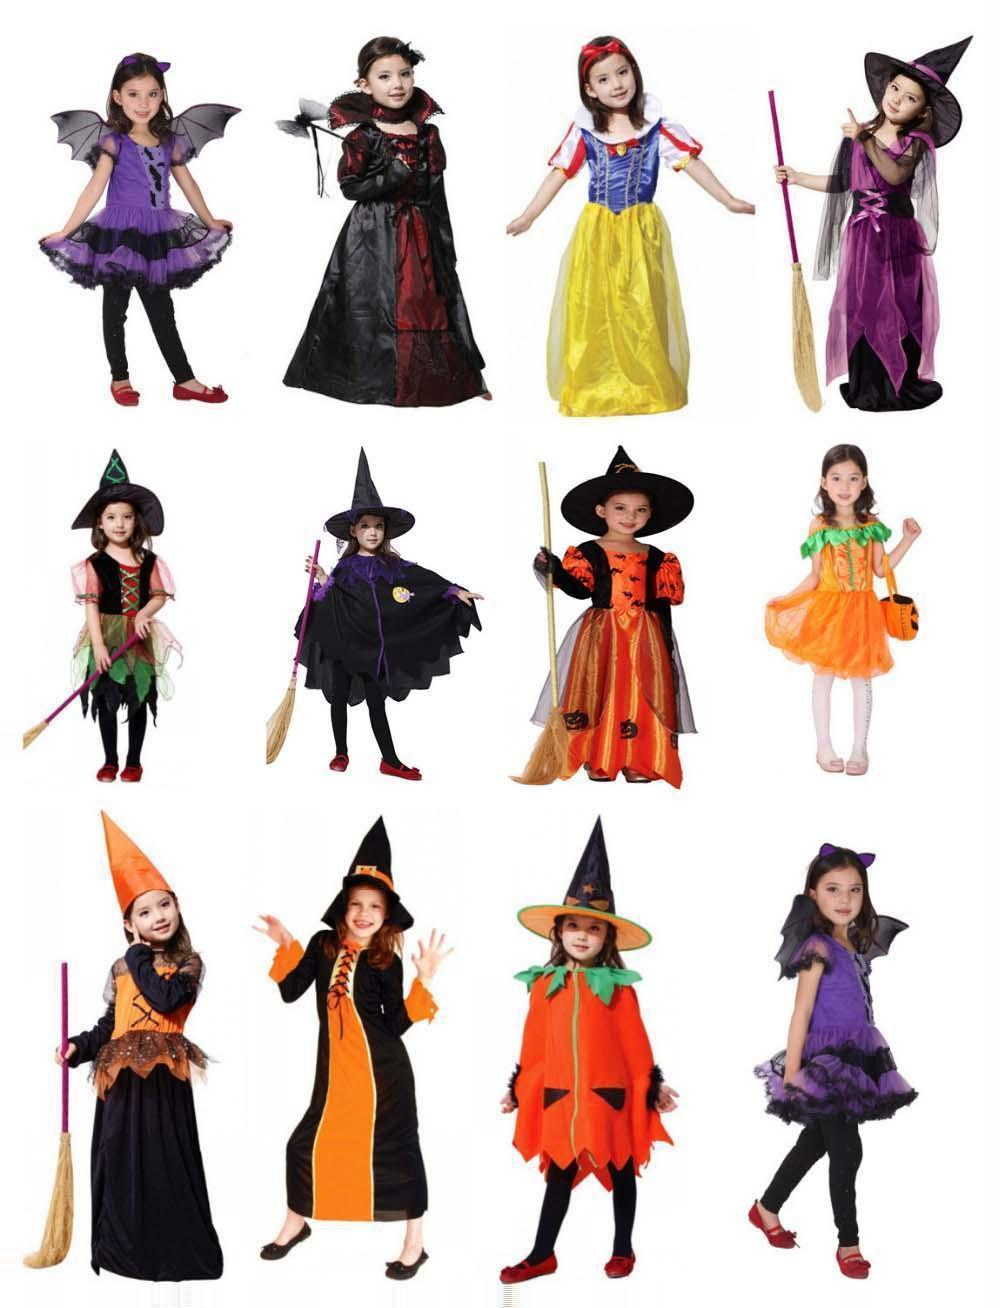 2018 2014 New Cute V&ire Costume Halloween Costume For Kids Girl Pumpkin Witch Dress Set Black Witches Hat Children School Cosplay From Lakers_man ...  sc 1 st  DHgate.com & 2018 2014 New Cute Vampire Costume Halloween Costume For Kids Girl ...